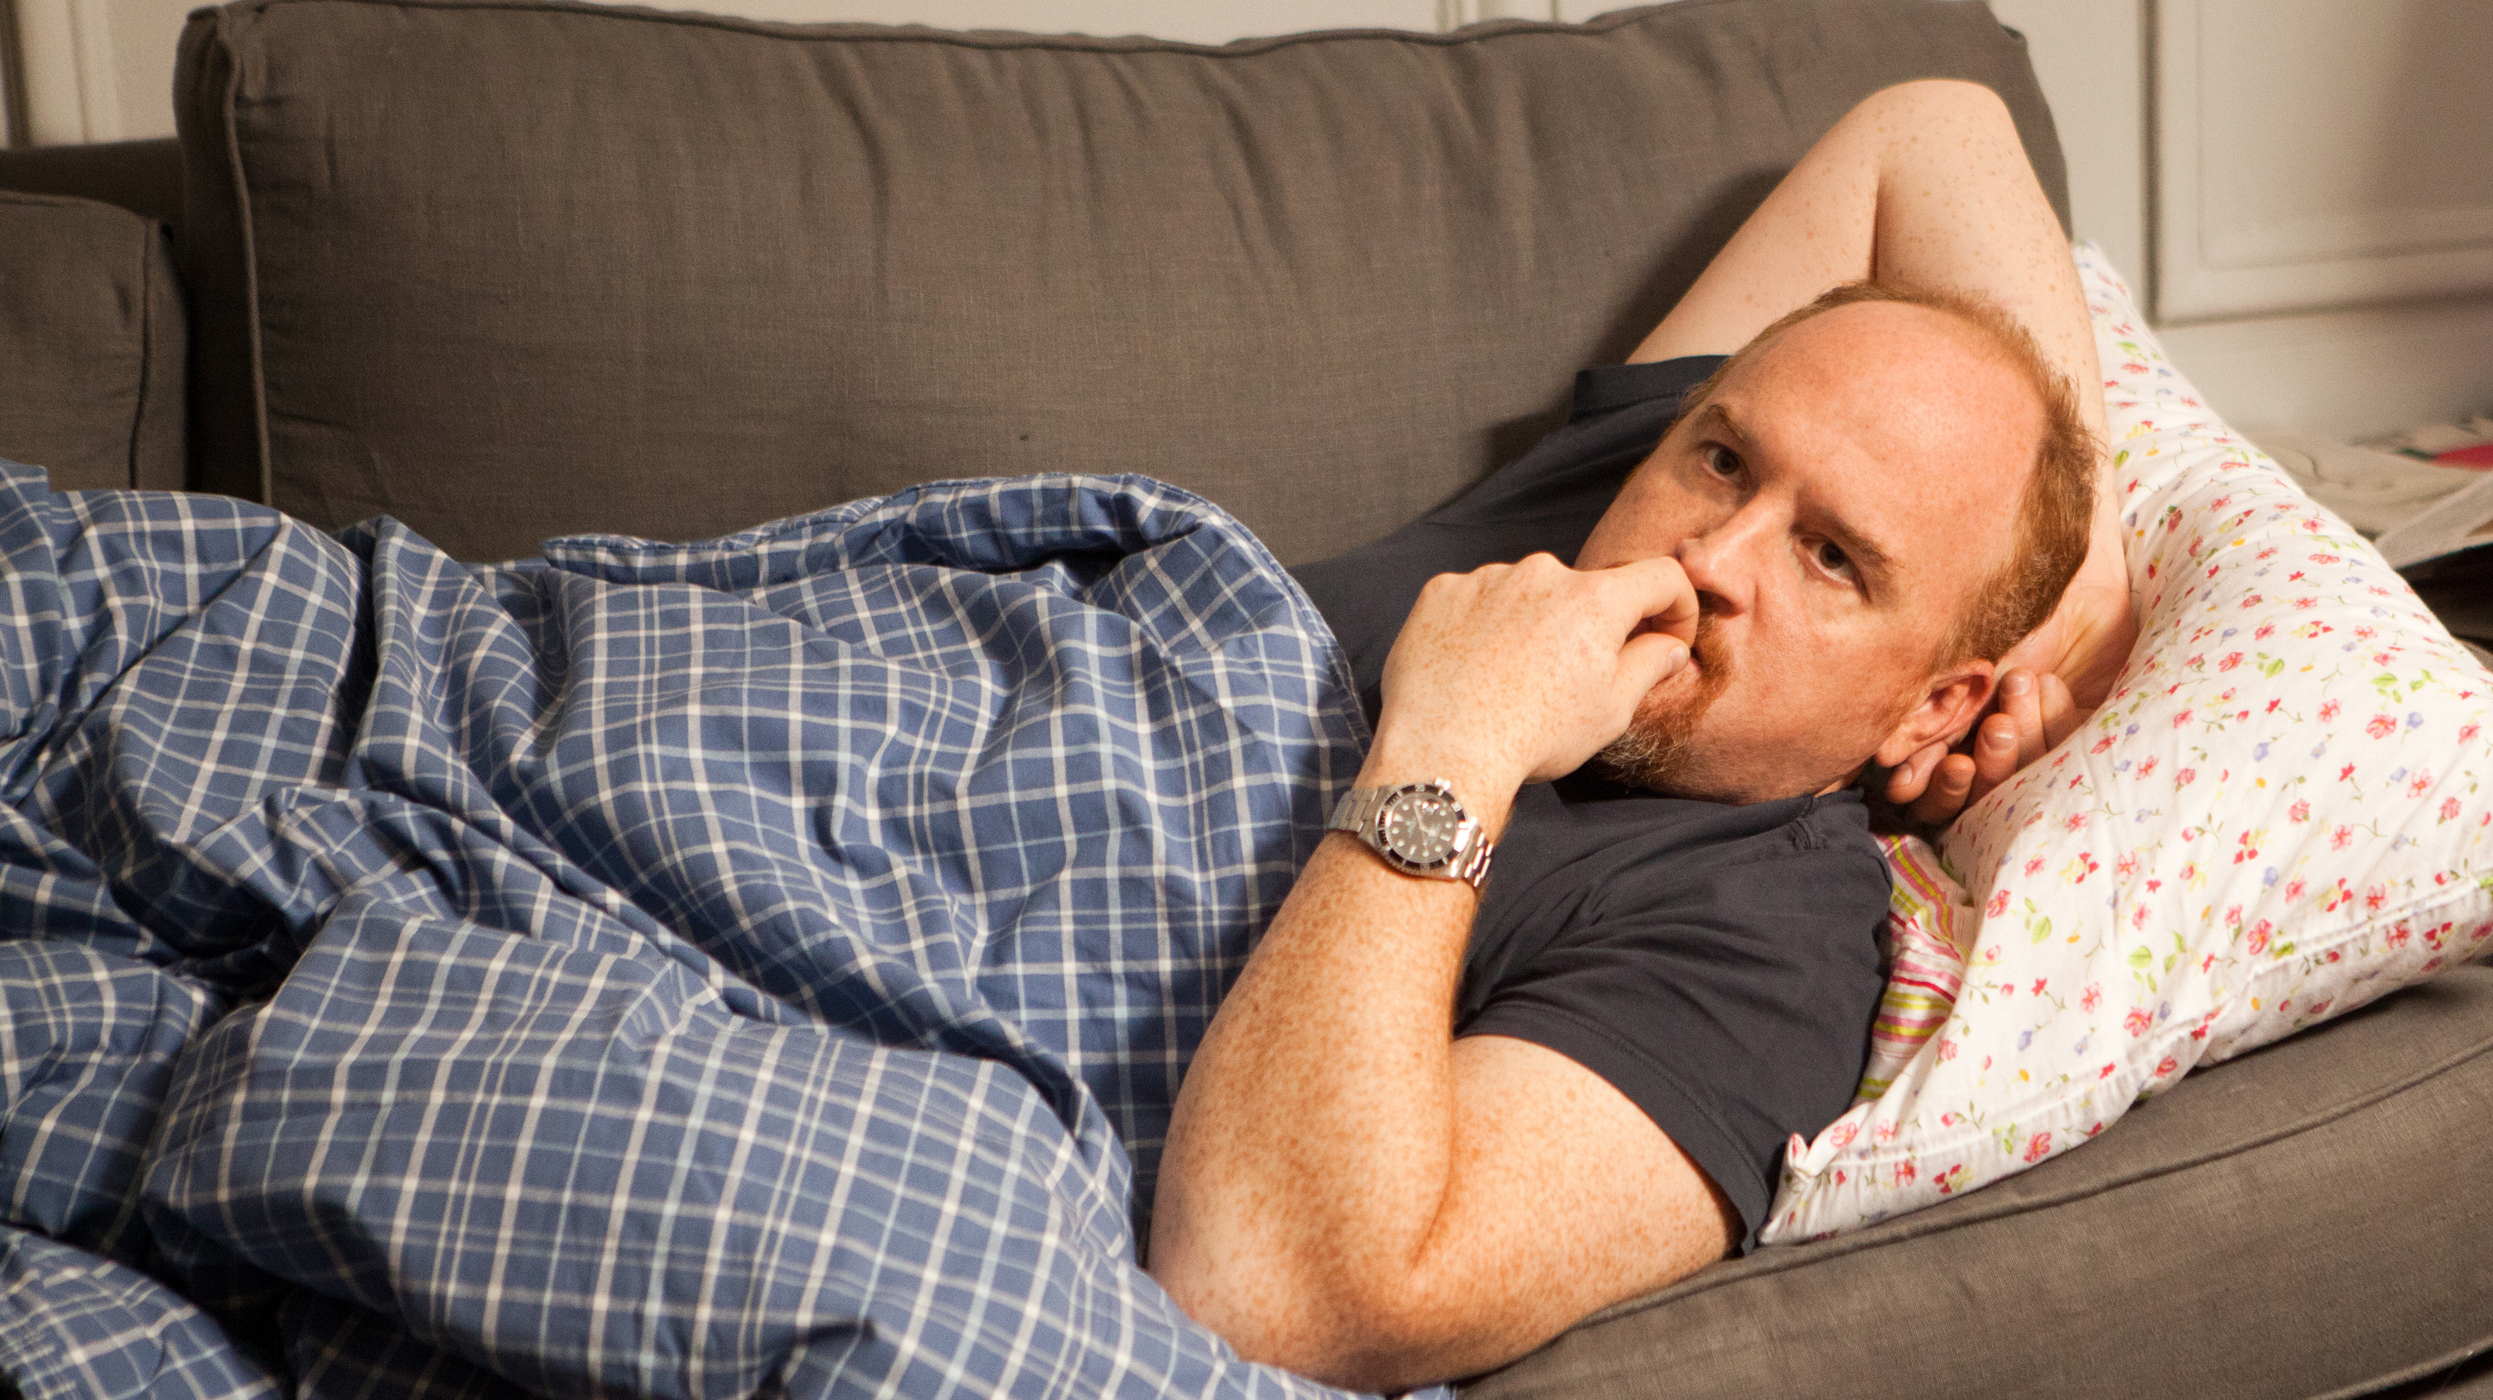 The Pains Of Parenting, And Other Life Lessons From Louis C.K.